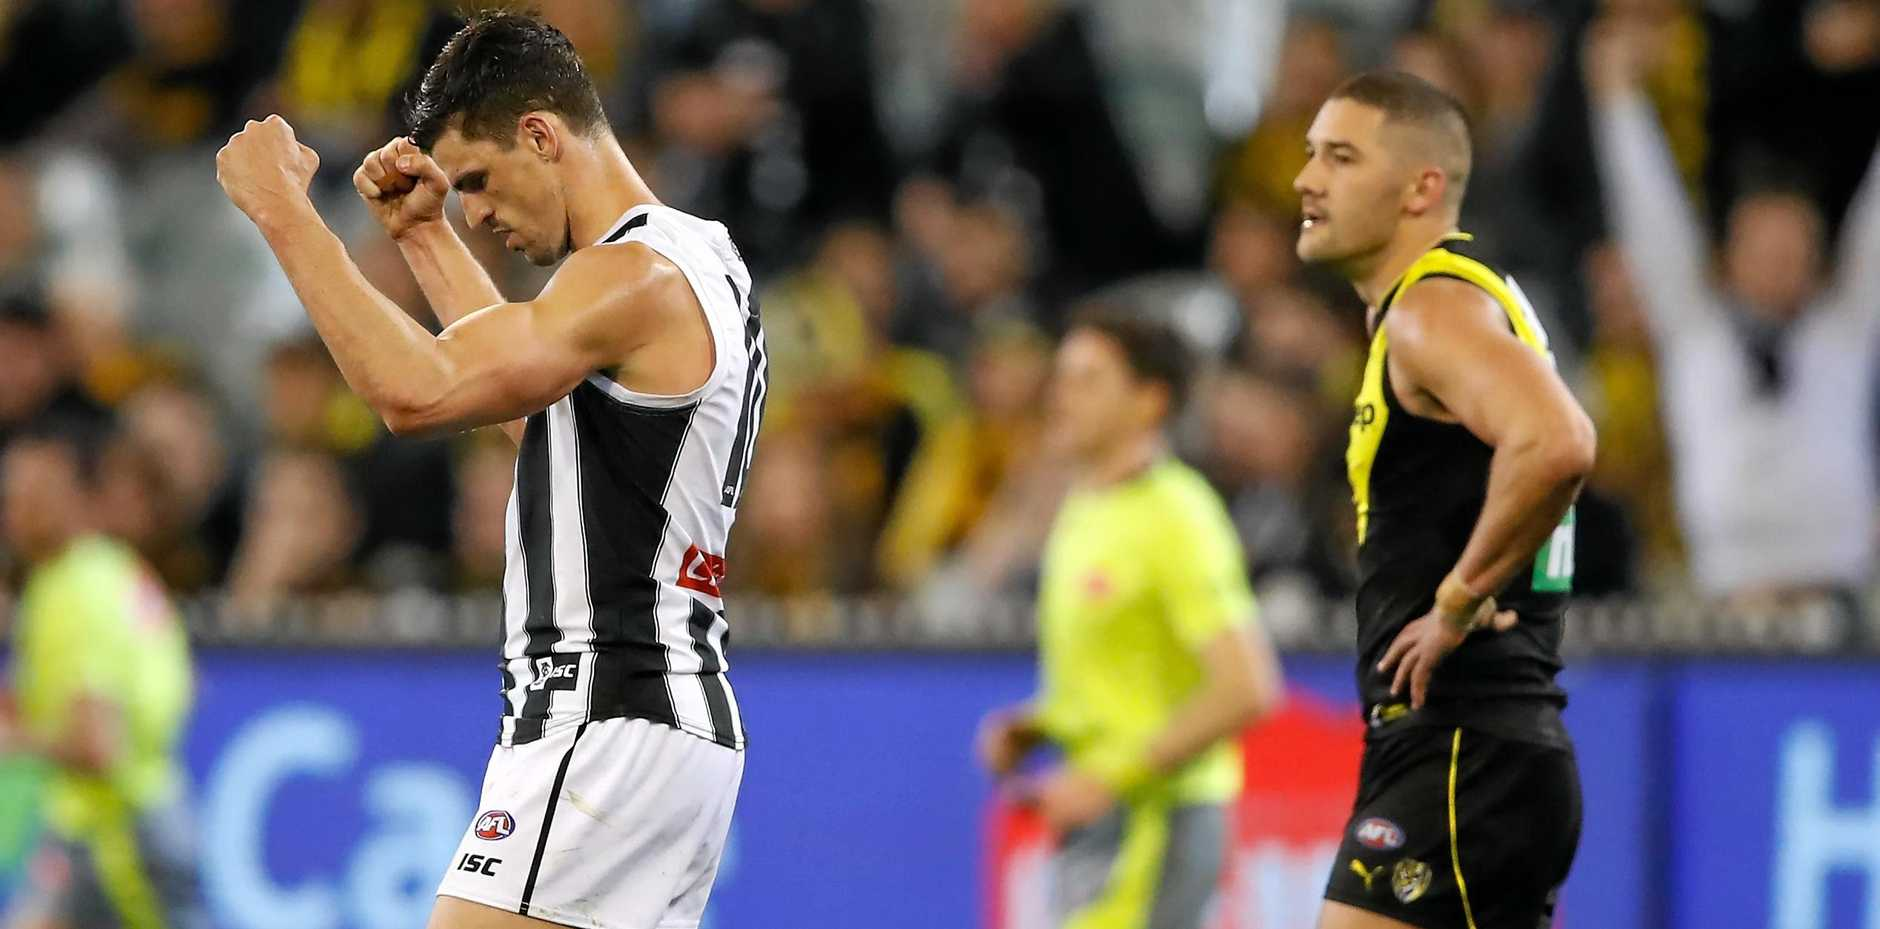 Magpies skipper Scott Pendlebury celebrates as the final siren sounds on Friday night. Picture: Adam Trafford/AFL Media/Getty Images